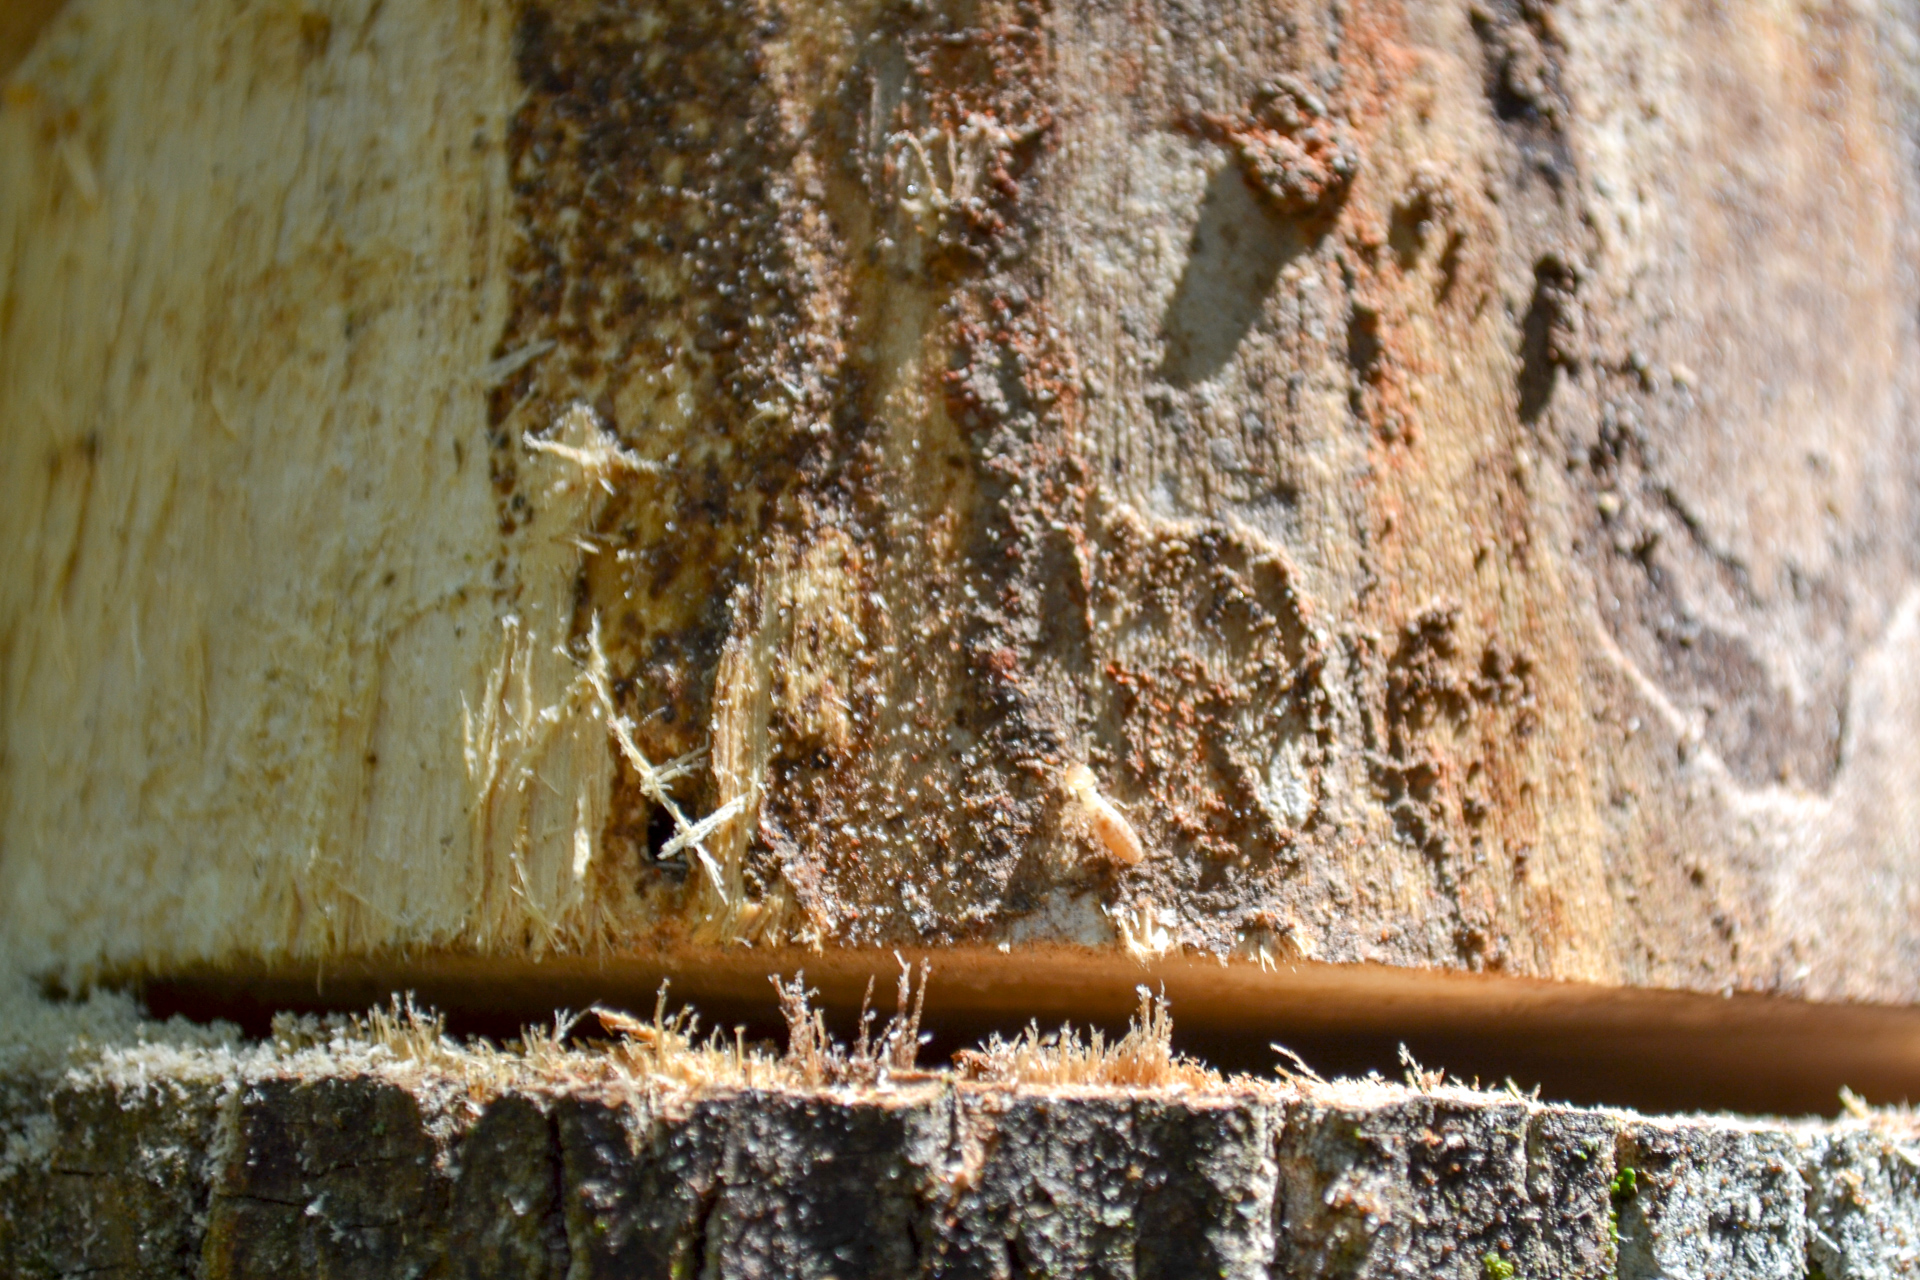 Closeup of termites above chainsaw cut line on dead tree